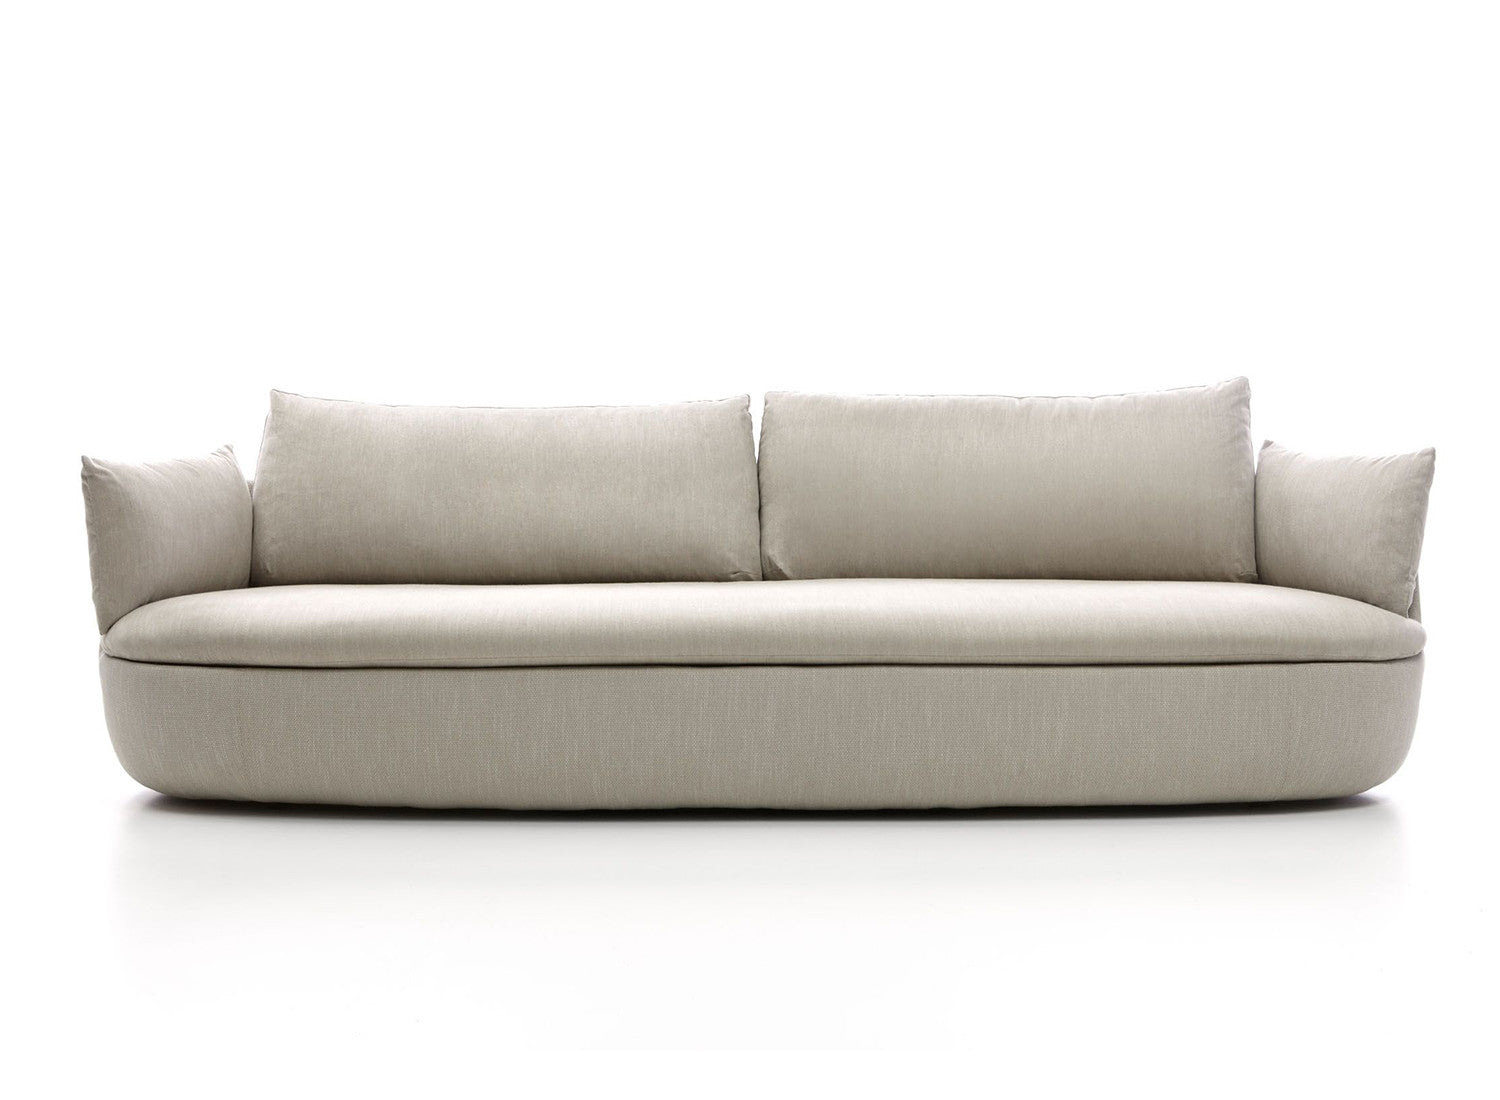 Bart XL Sofa